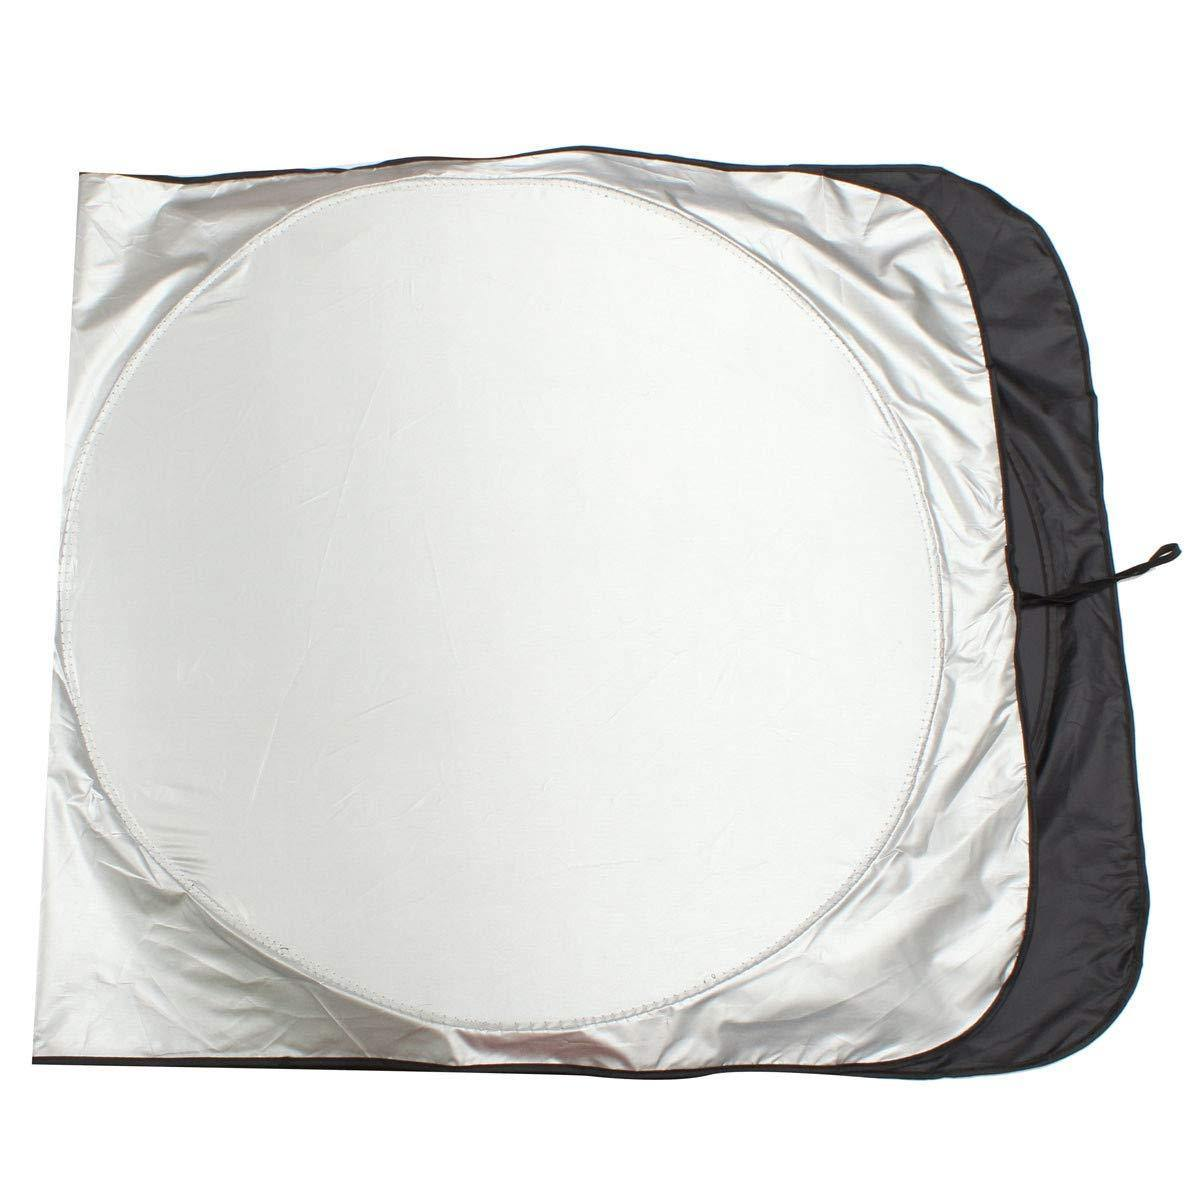 2in1 Nylon Sunshade 150X70CM - Silver/Black